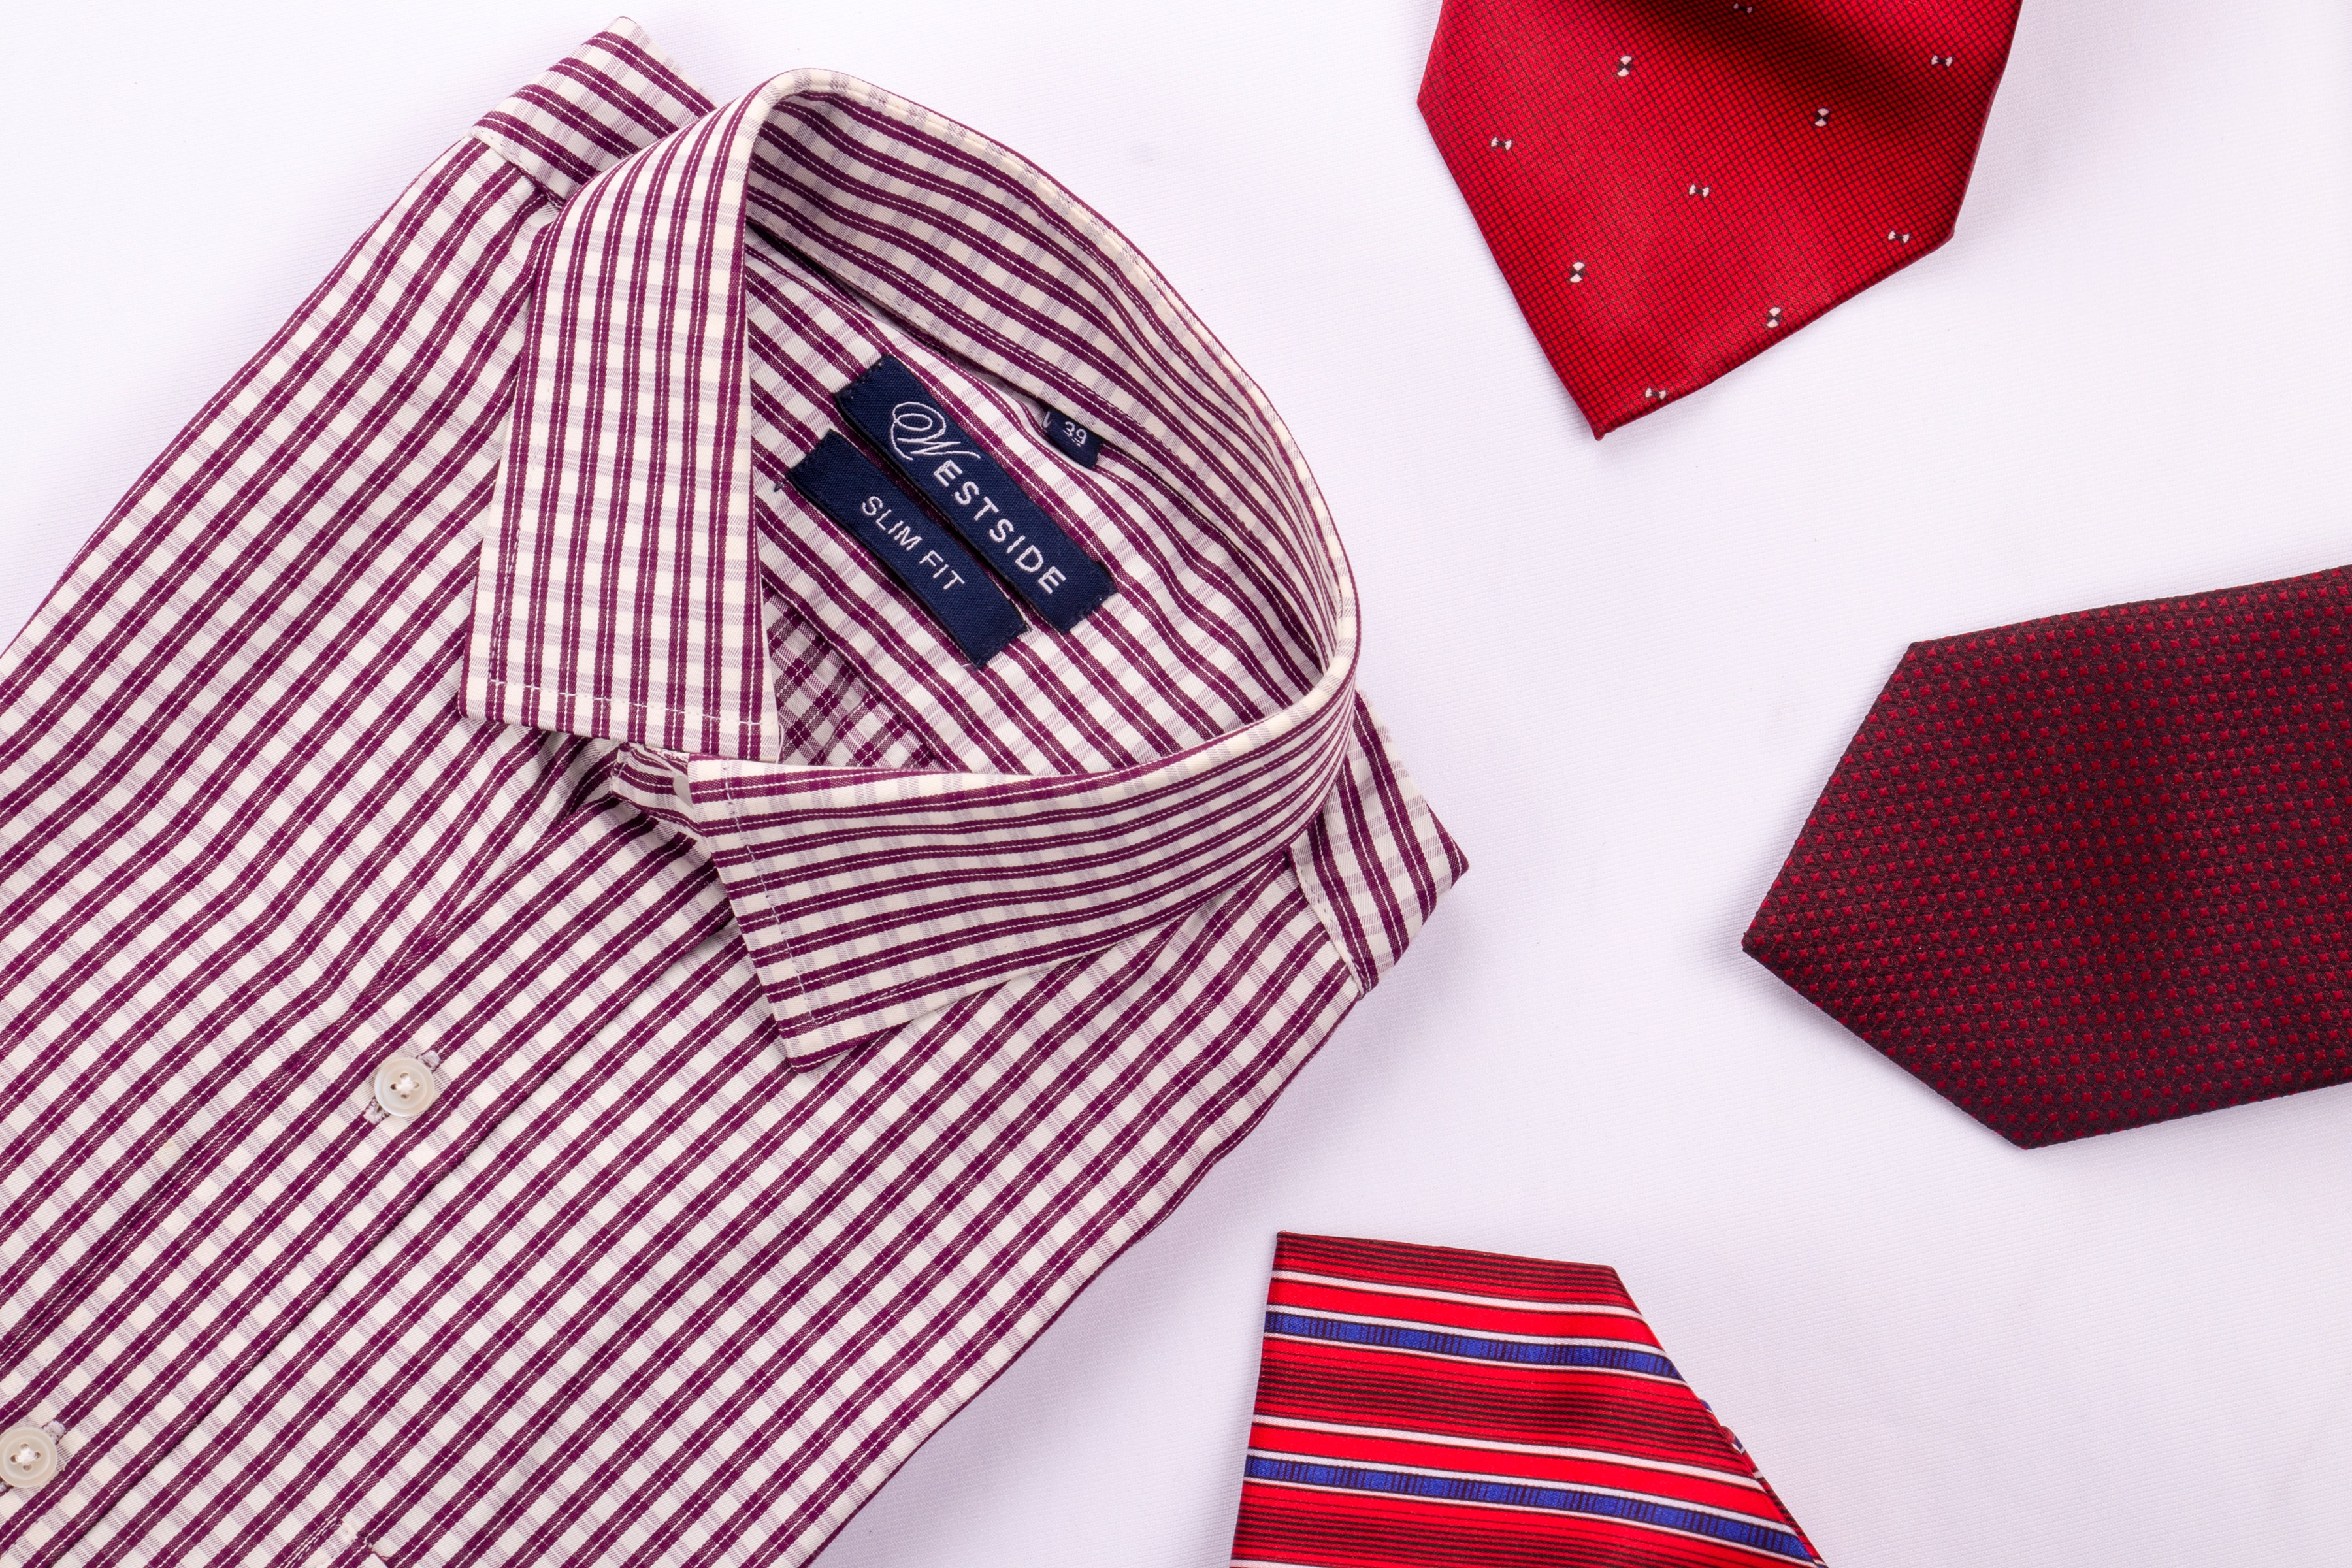 Shirt with three ties beside it